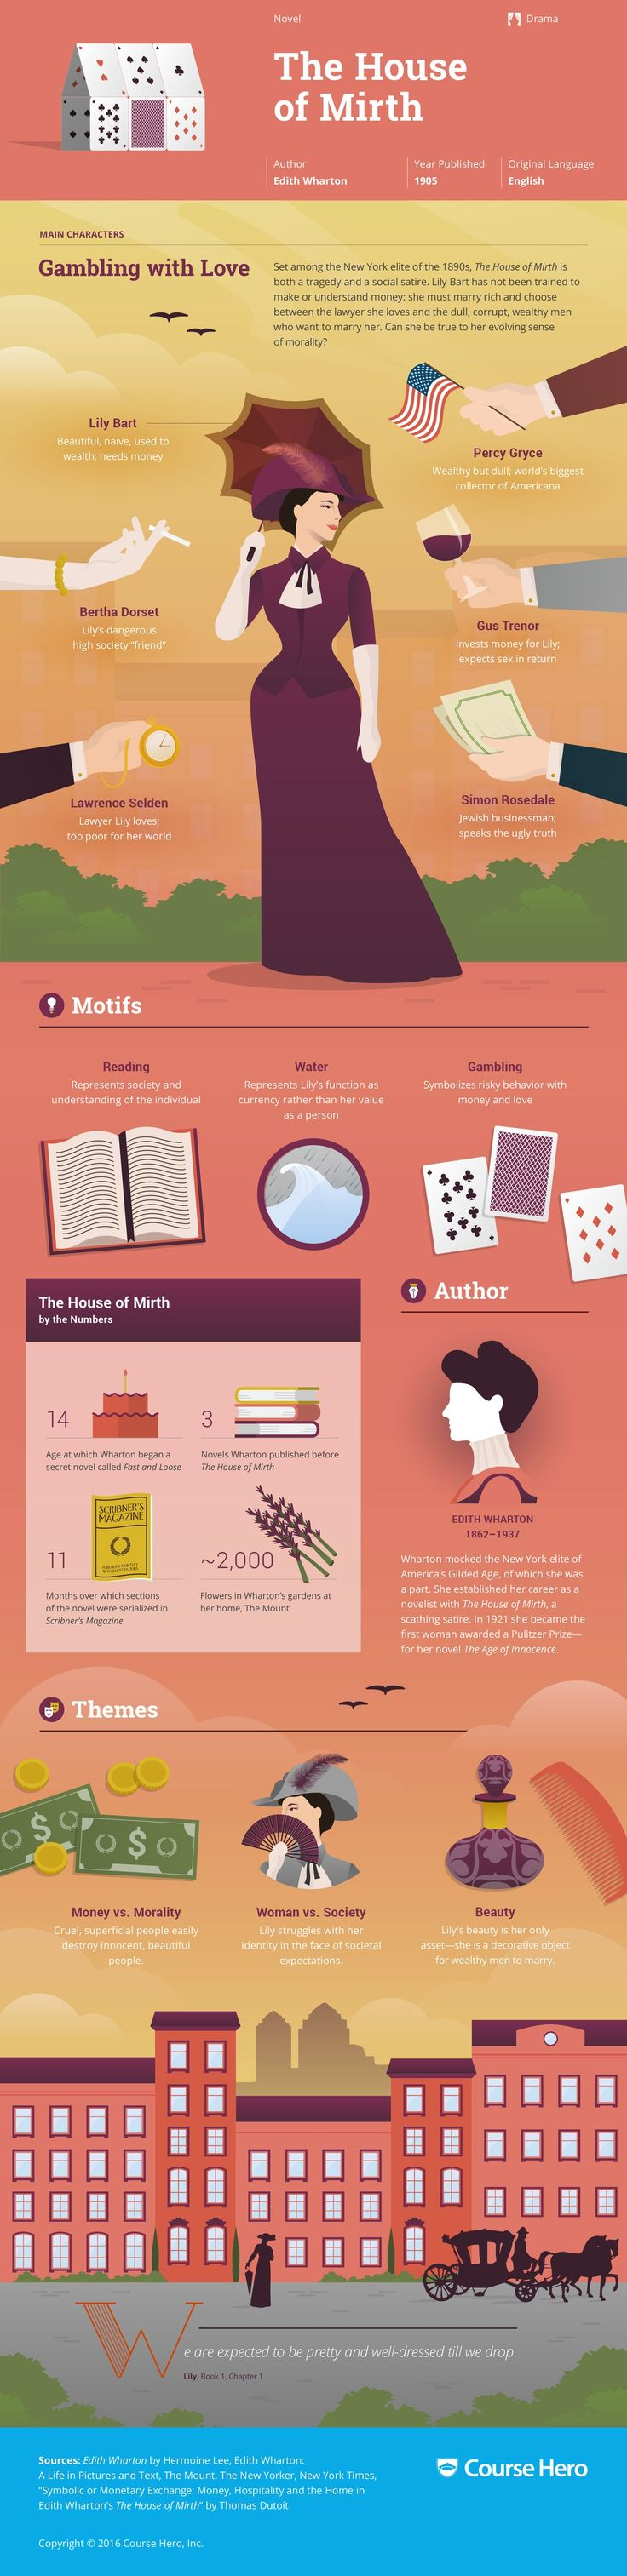 The House of Mirth Infographic | Course Hero